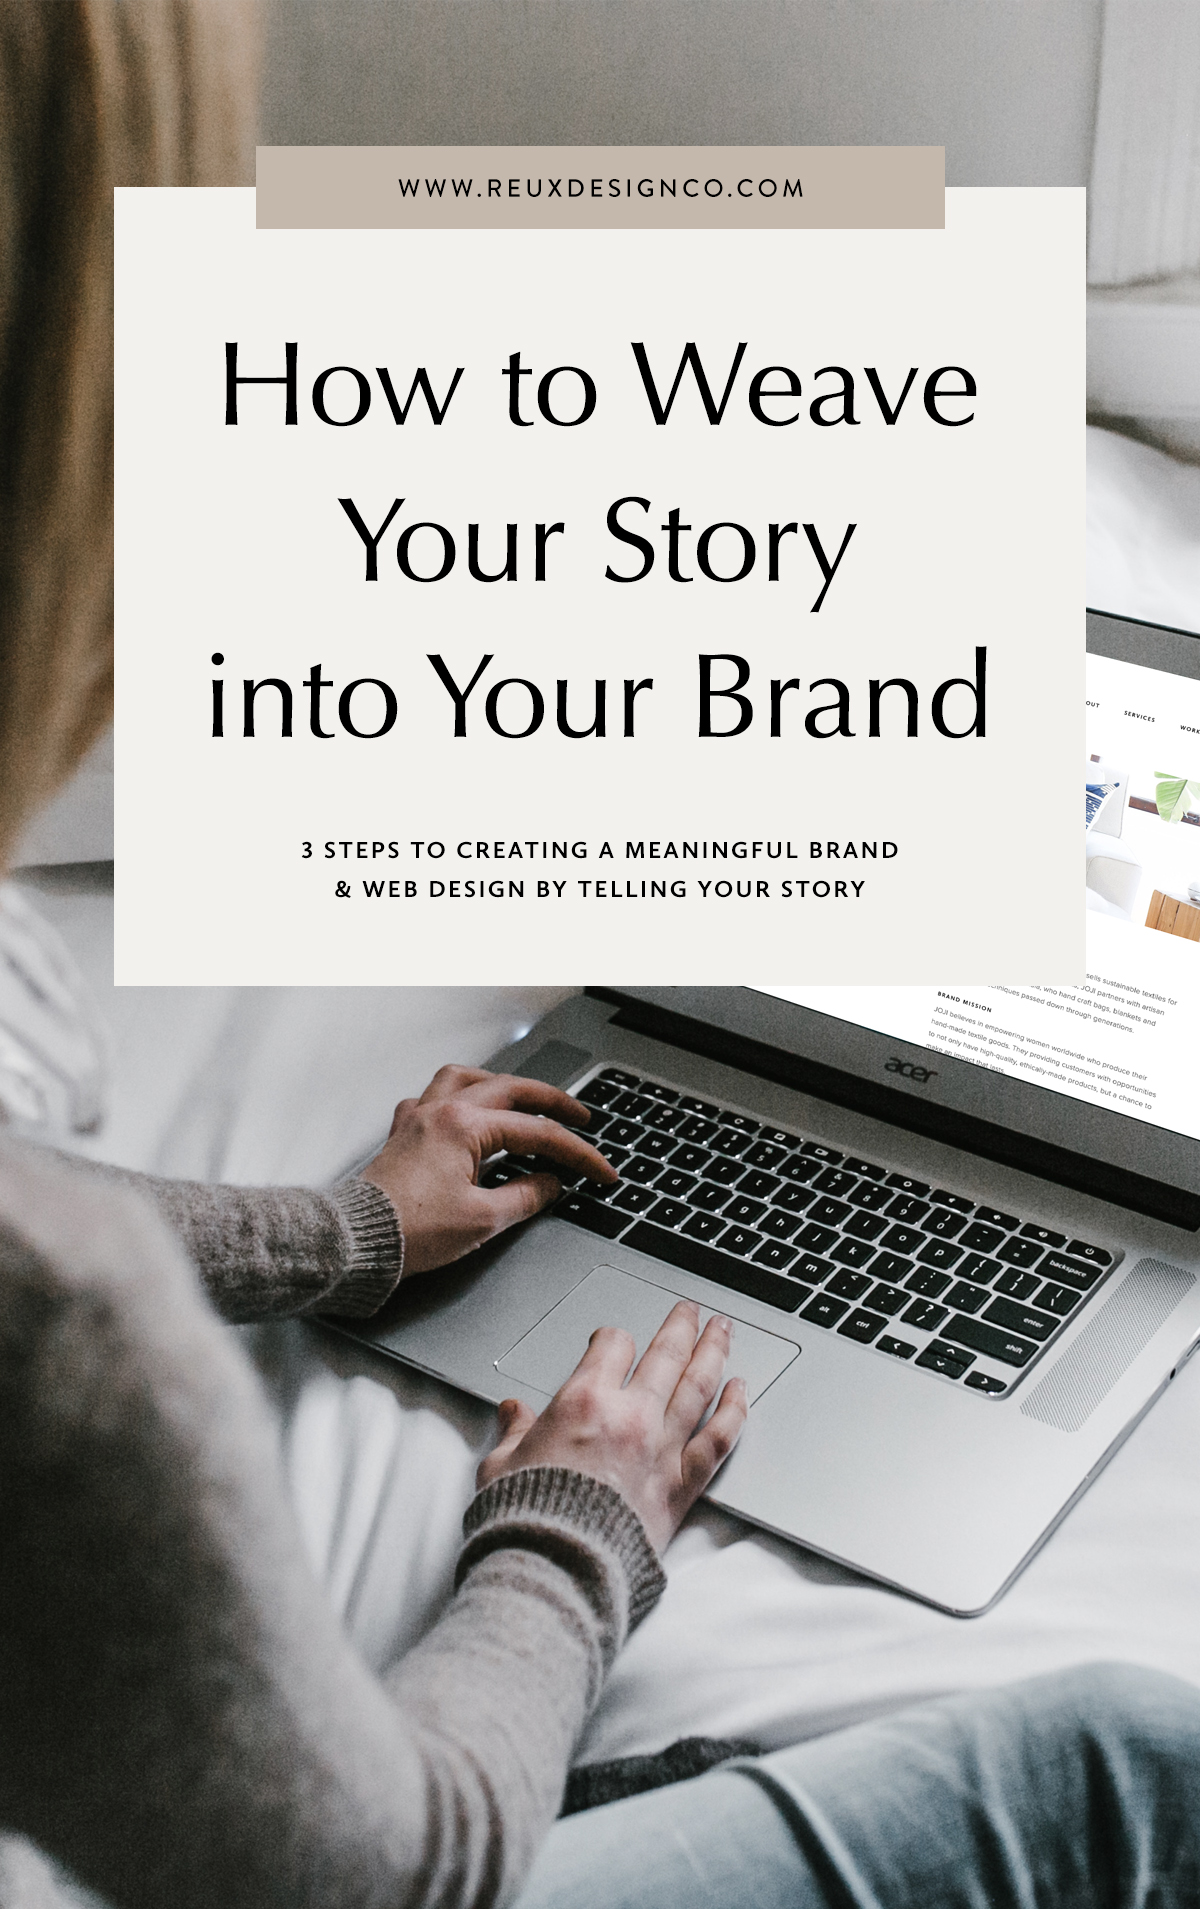 How to Tell Your Story Through Your Brand and Website Design PLUS Why it's important to tell a story for a meaningful, client connecting brand | Reux Design Co. — Brand & Web Design for Holistic, Sustainable Businesses